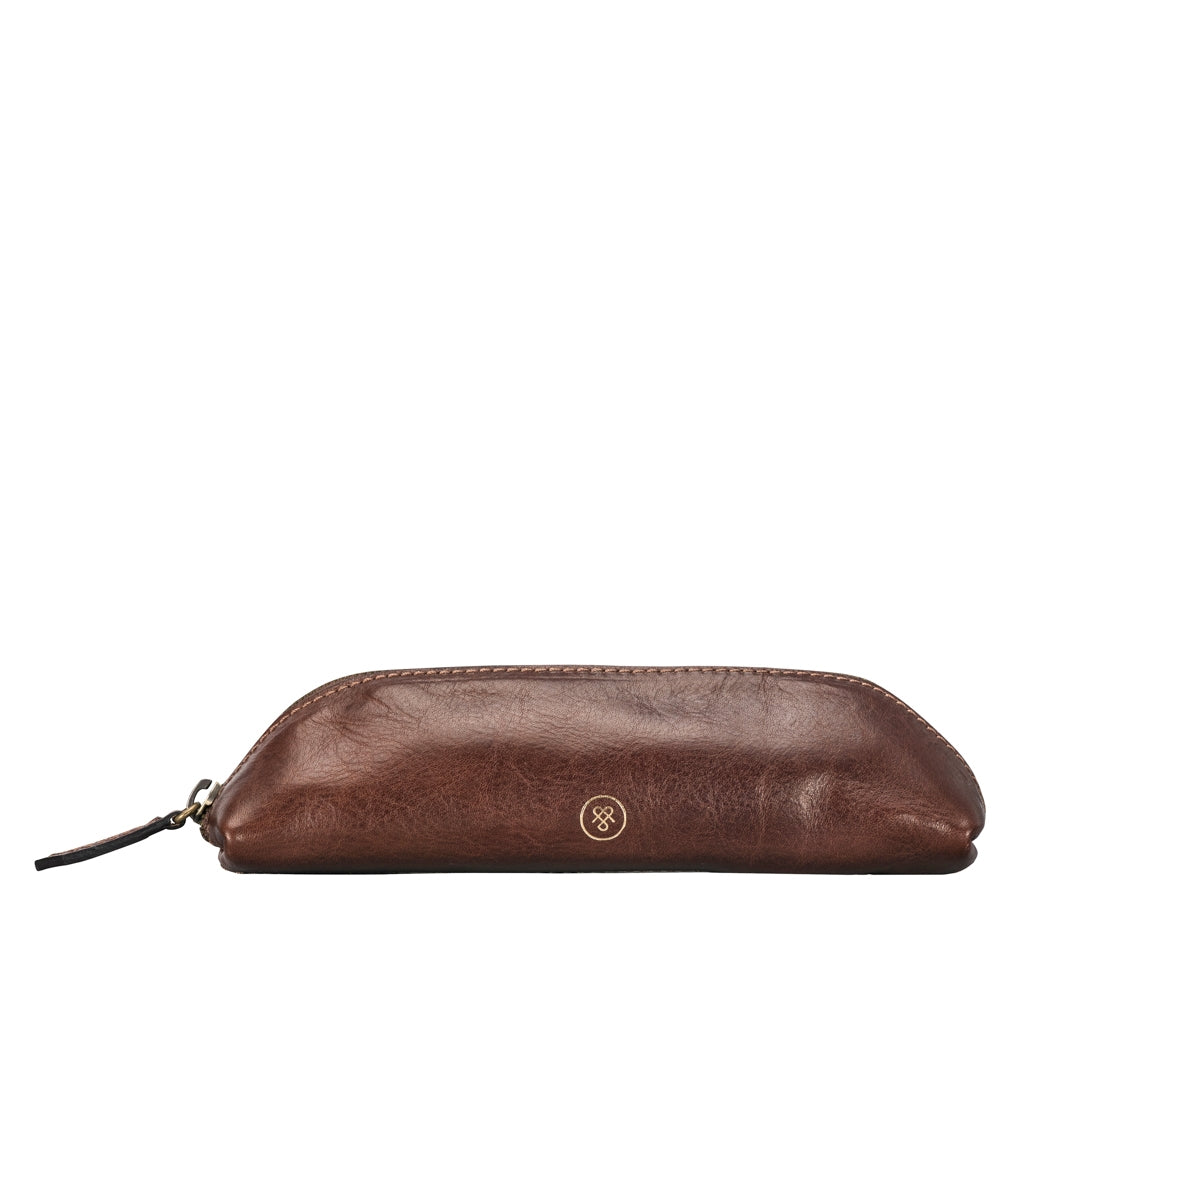 Image 1 of the 'Lorena' Leather Makeup Brush Case Tan